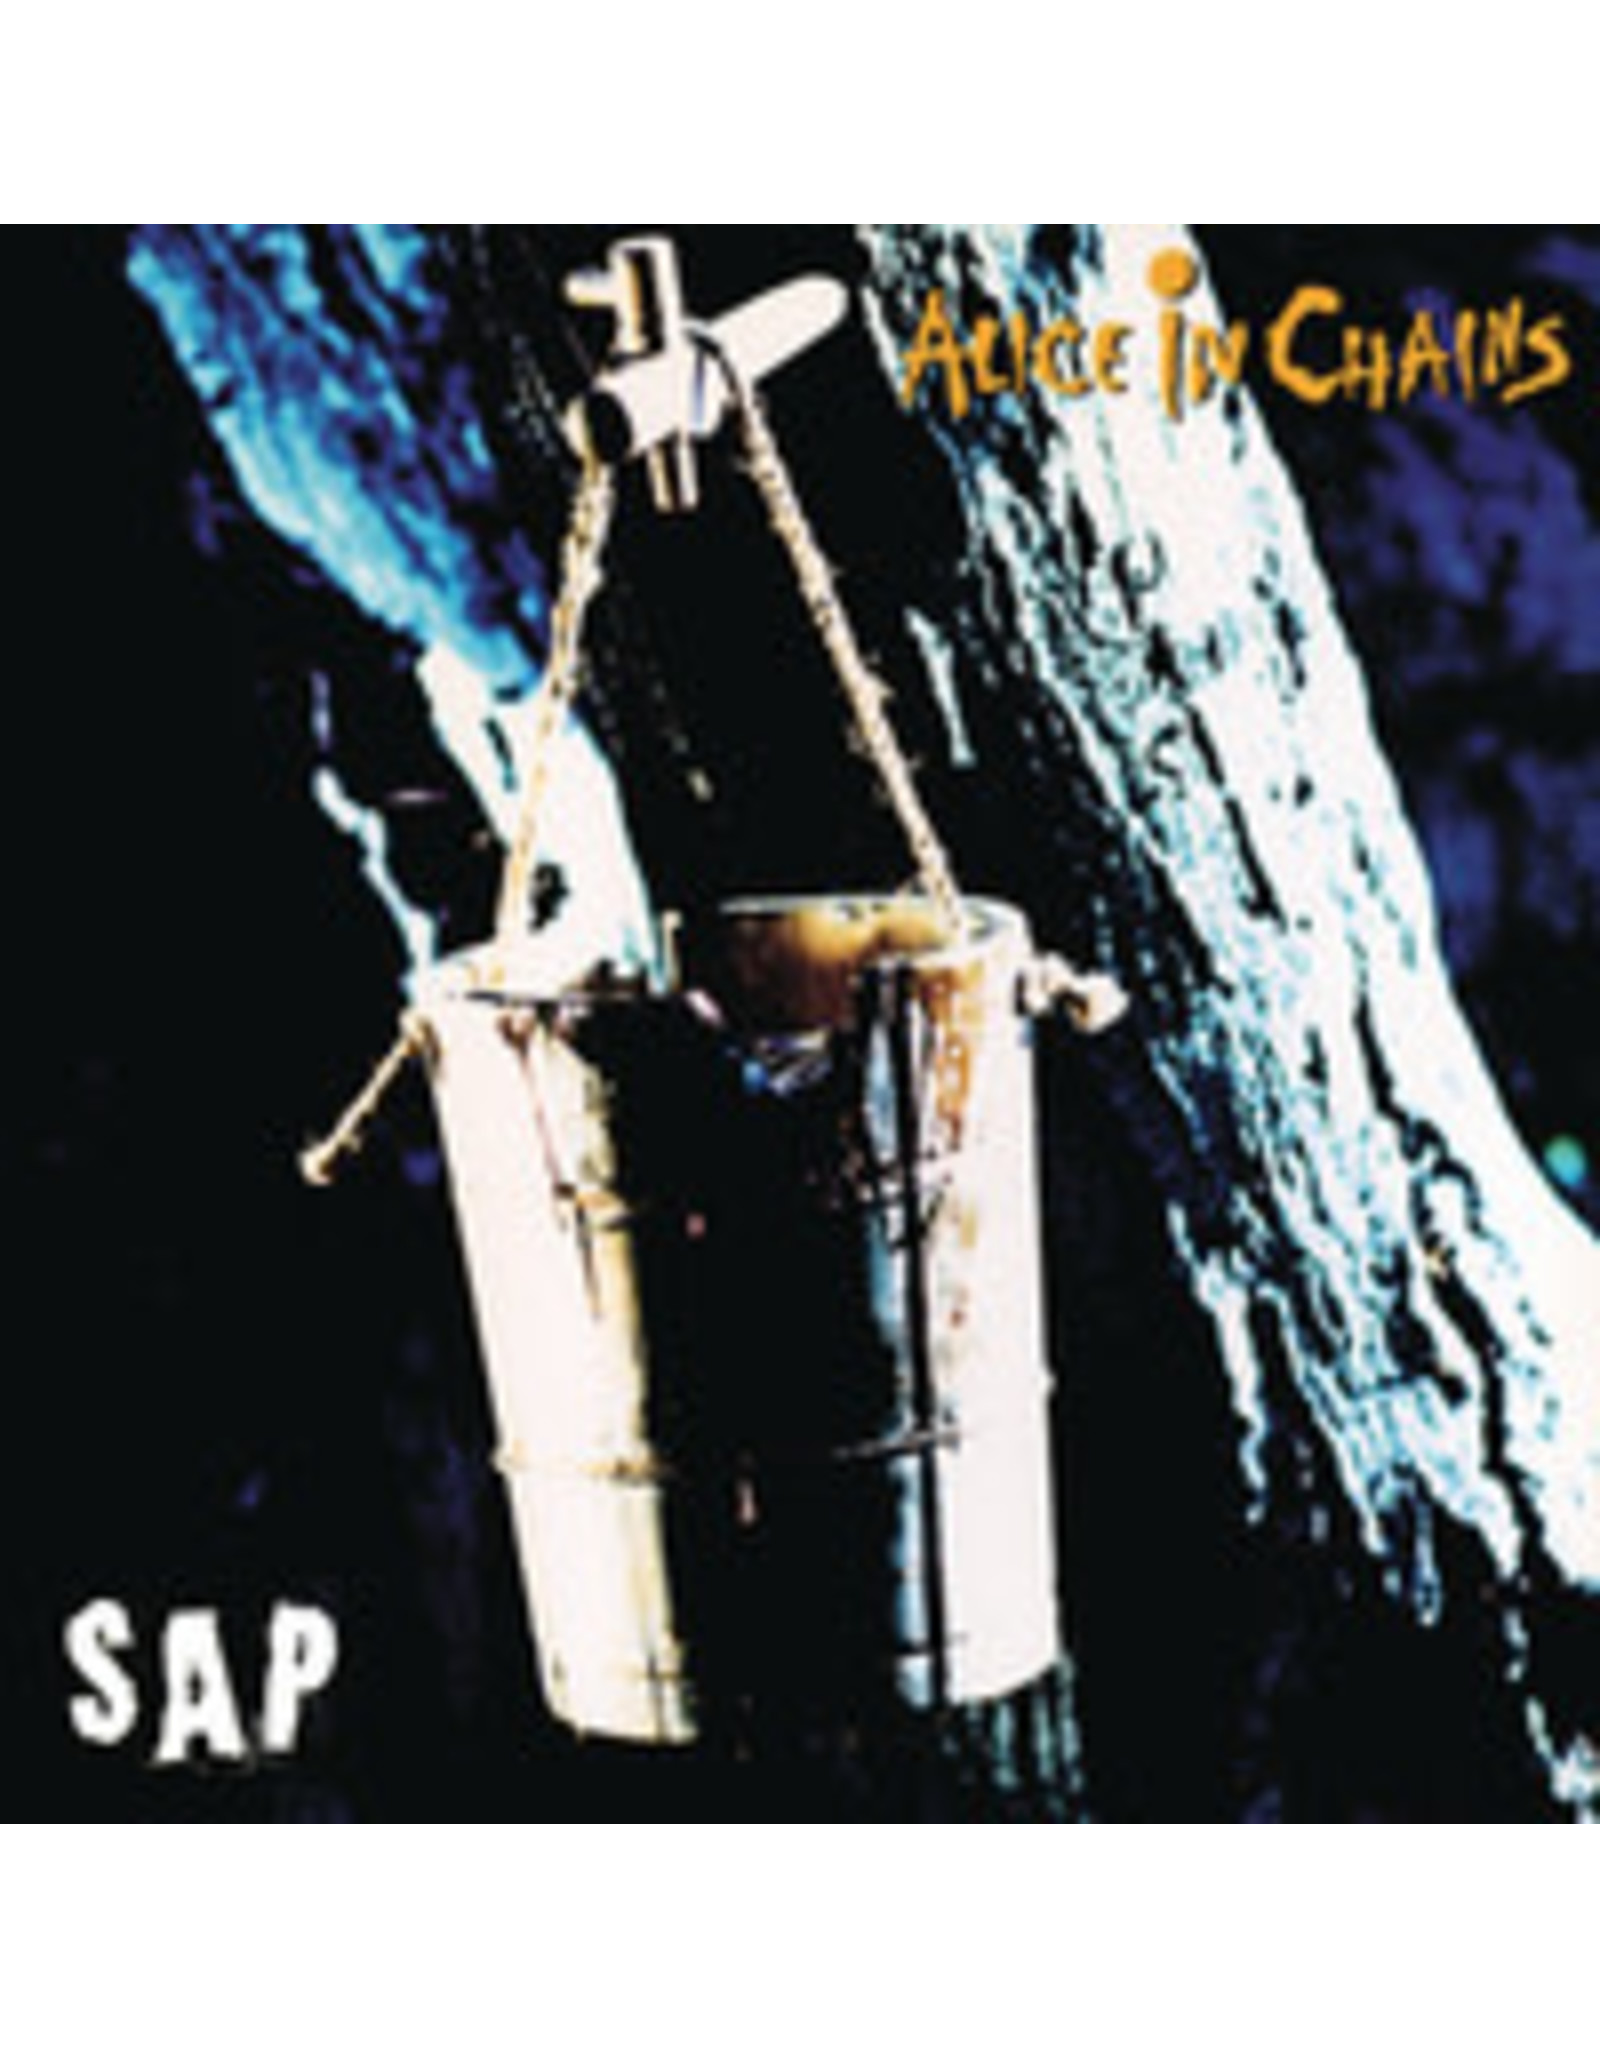 Alice In Chains - Sap EP (RSD 2020) LP